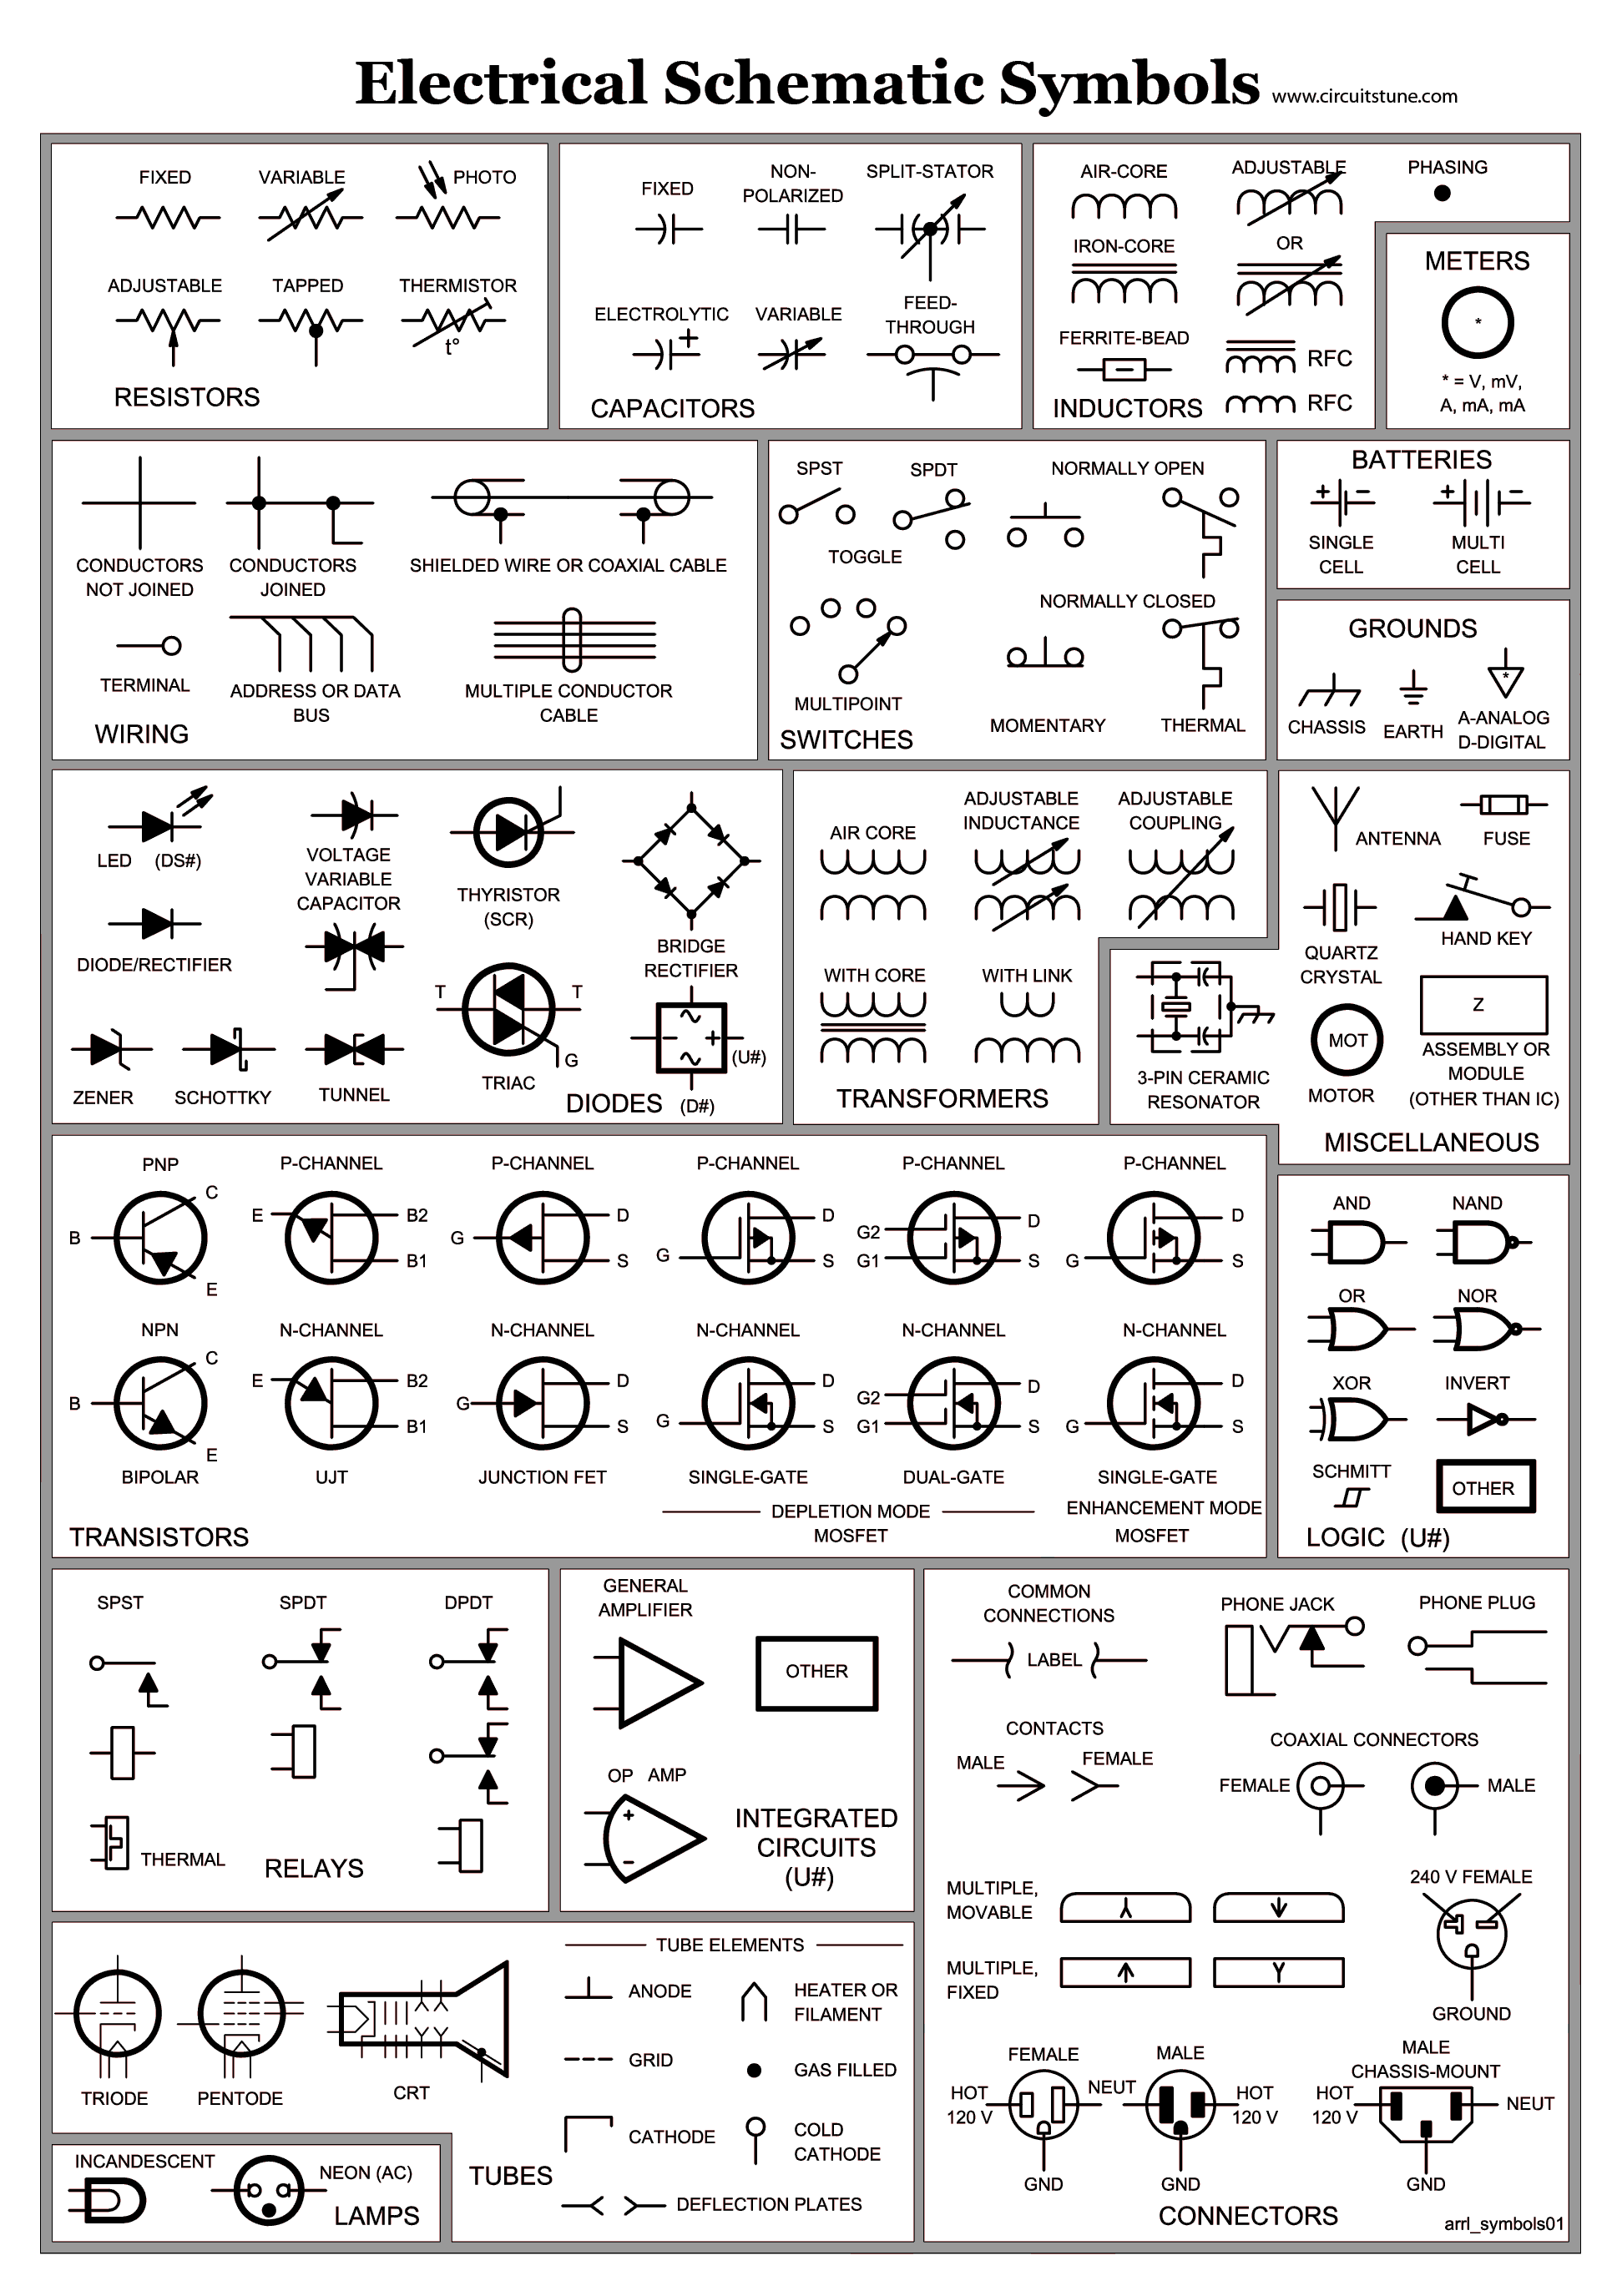 electrical schematic symbols wire diagram symbols automotive wiring rh pinterest com Main Electrical Panel Wiring Basement Electrical Wiring